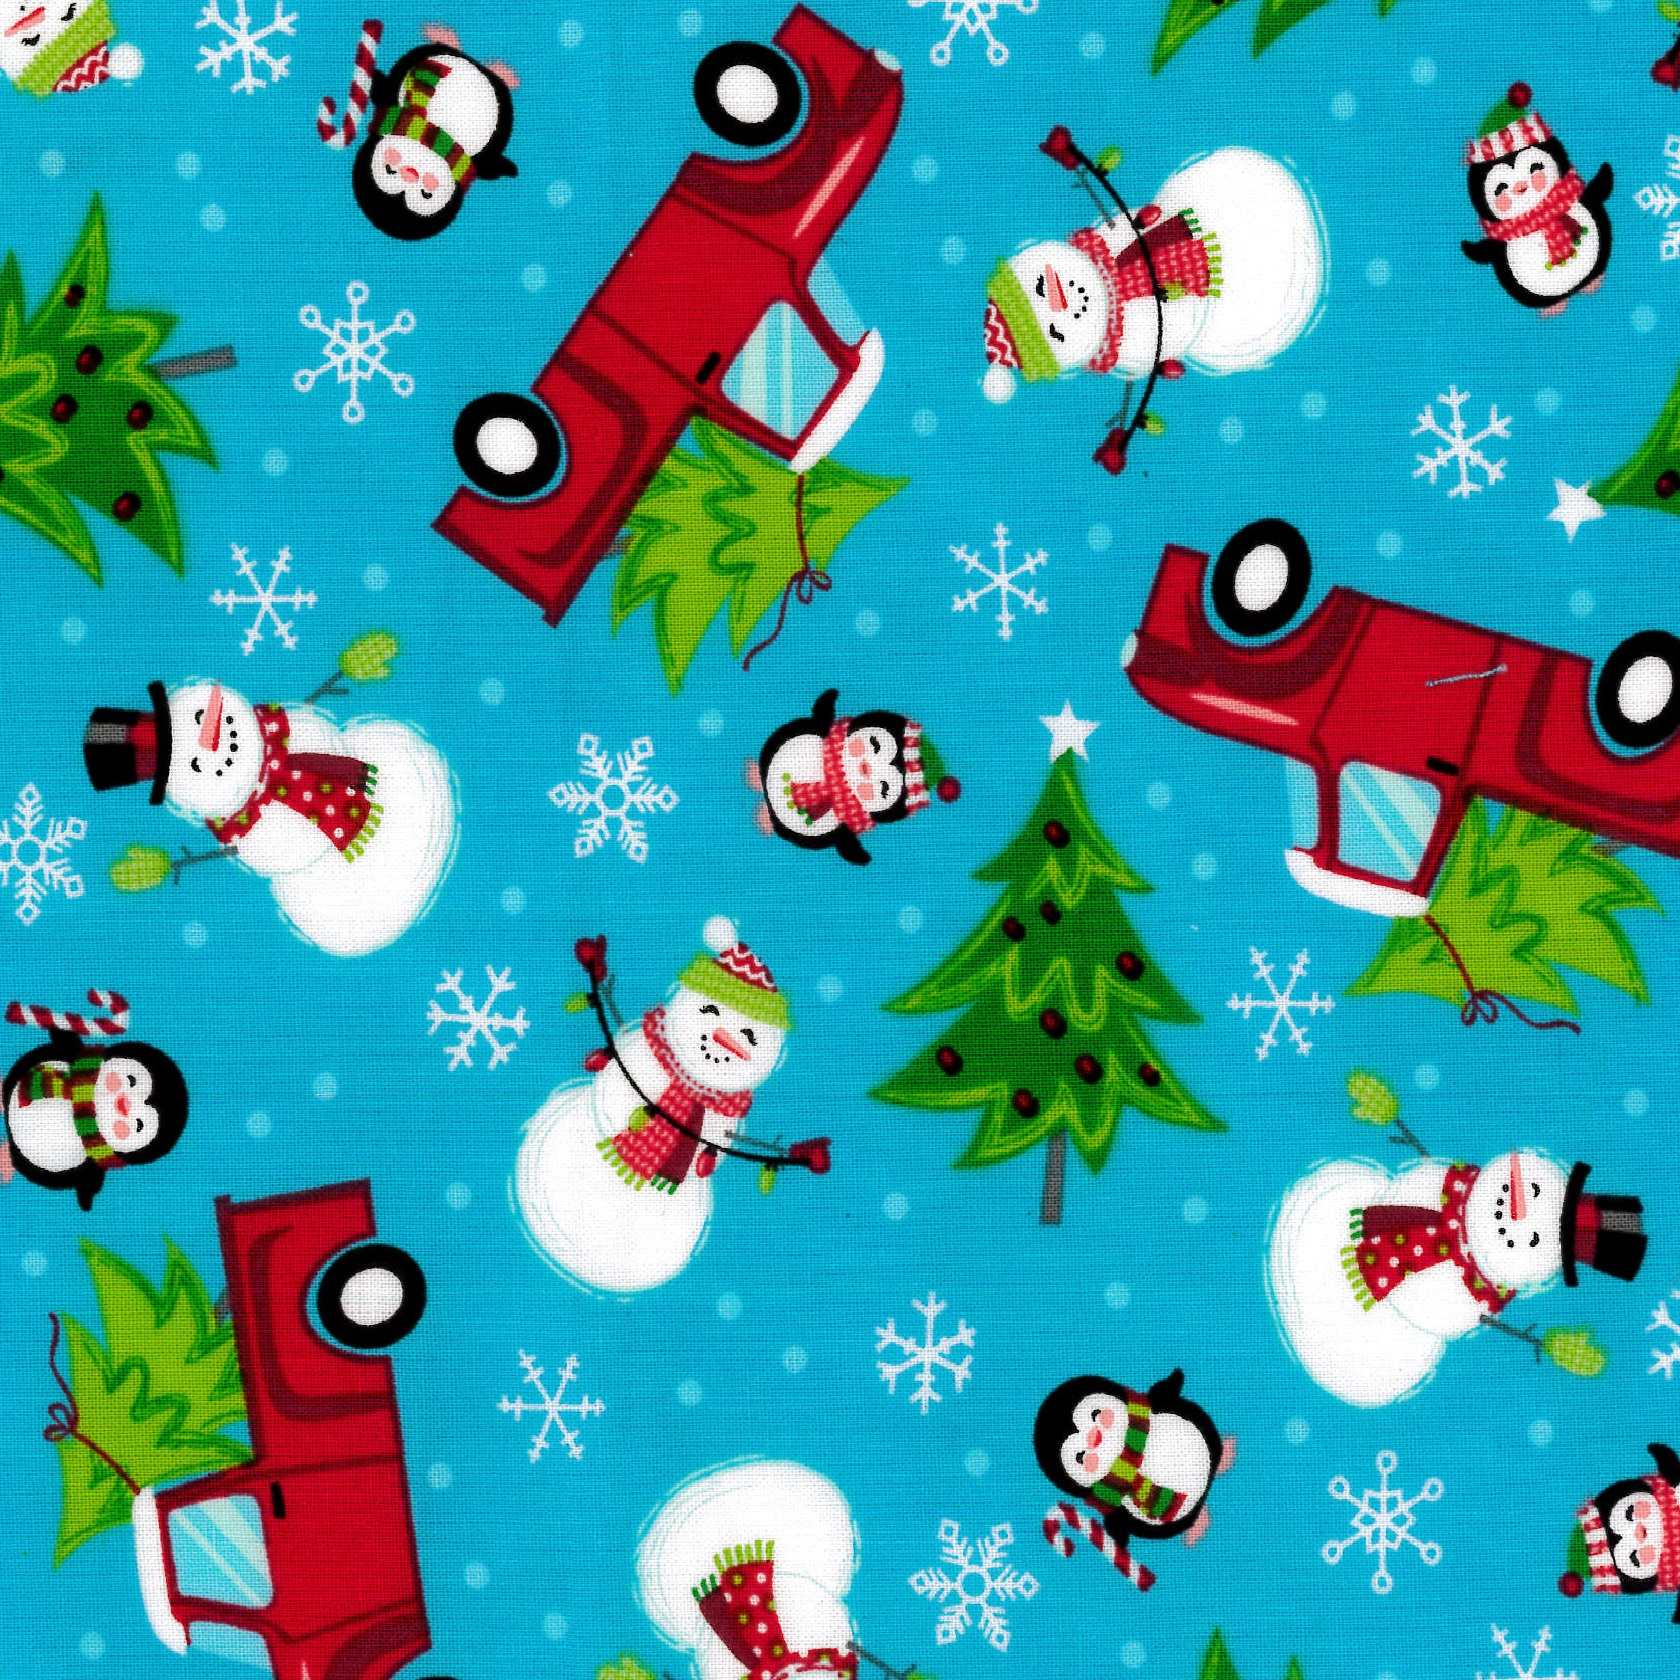 Christmas, Holiday Fabrics, Cars-Blue, 100% Cotton Print Fabric 44'' Wide, 140 Gsm, Quilt Crafts Cut By The Yard, RTC Fabrics